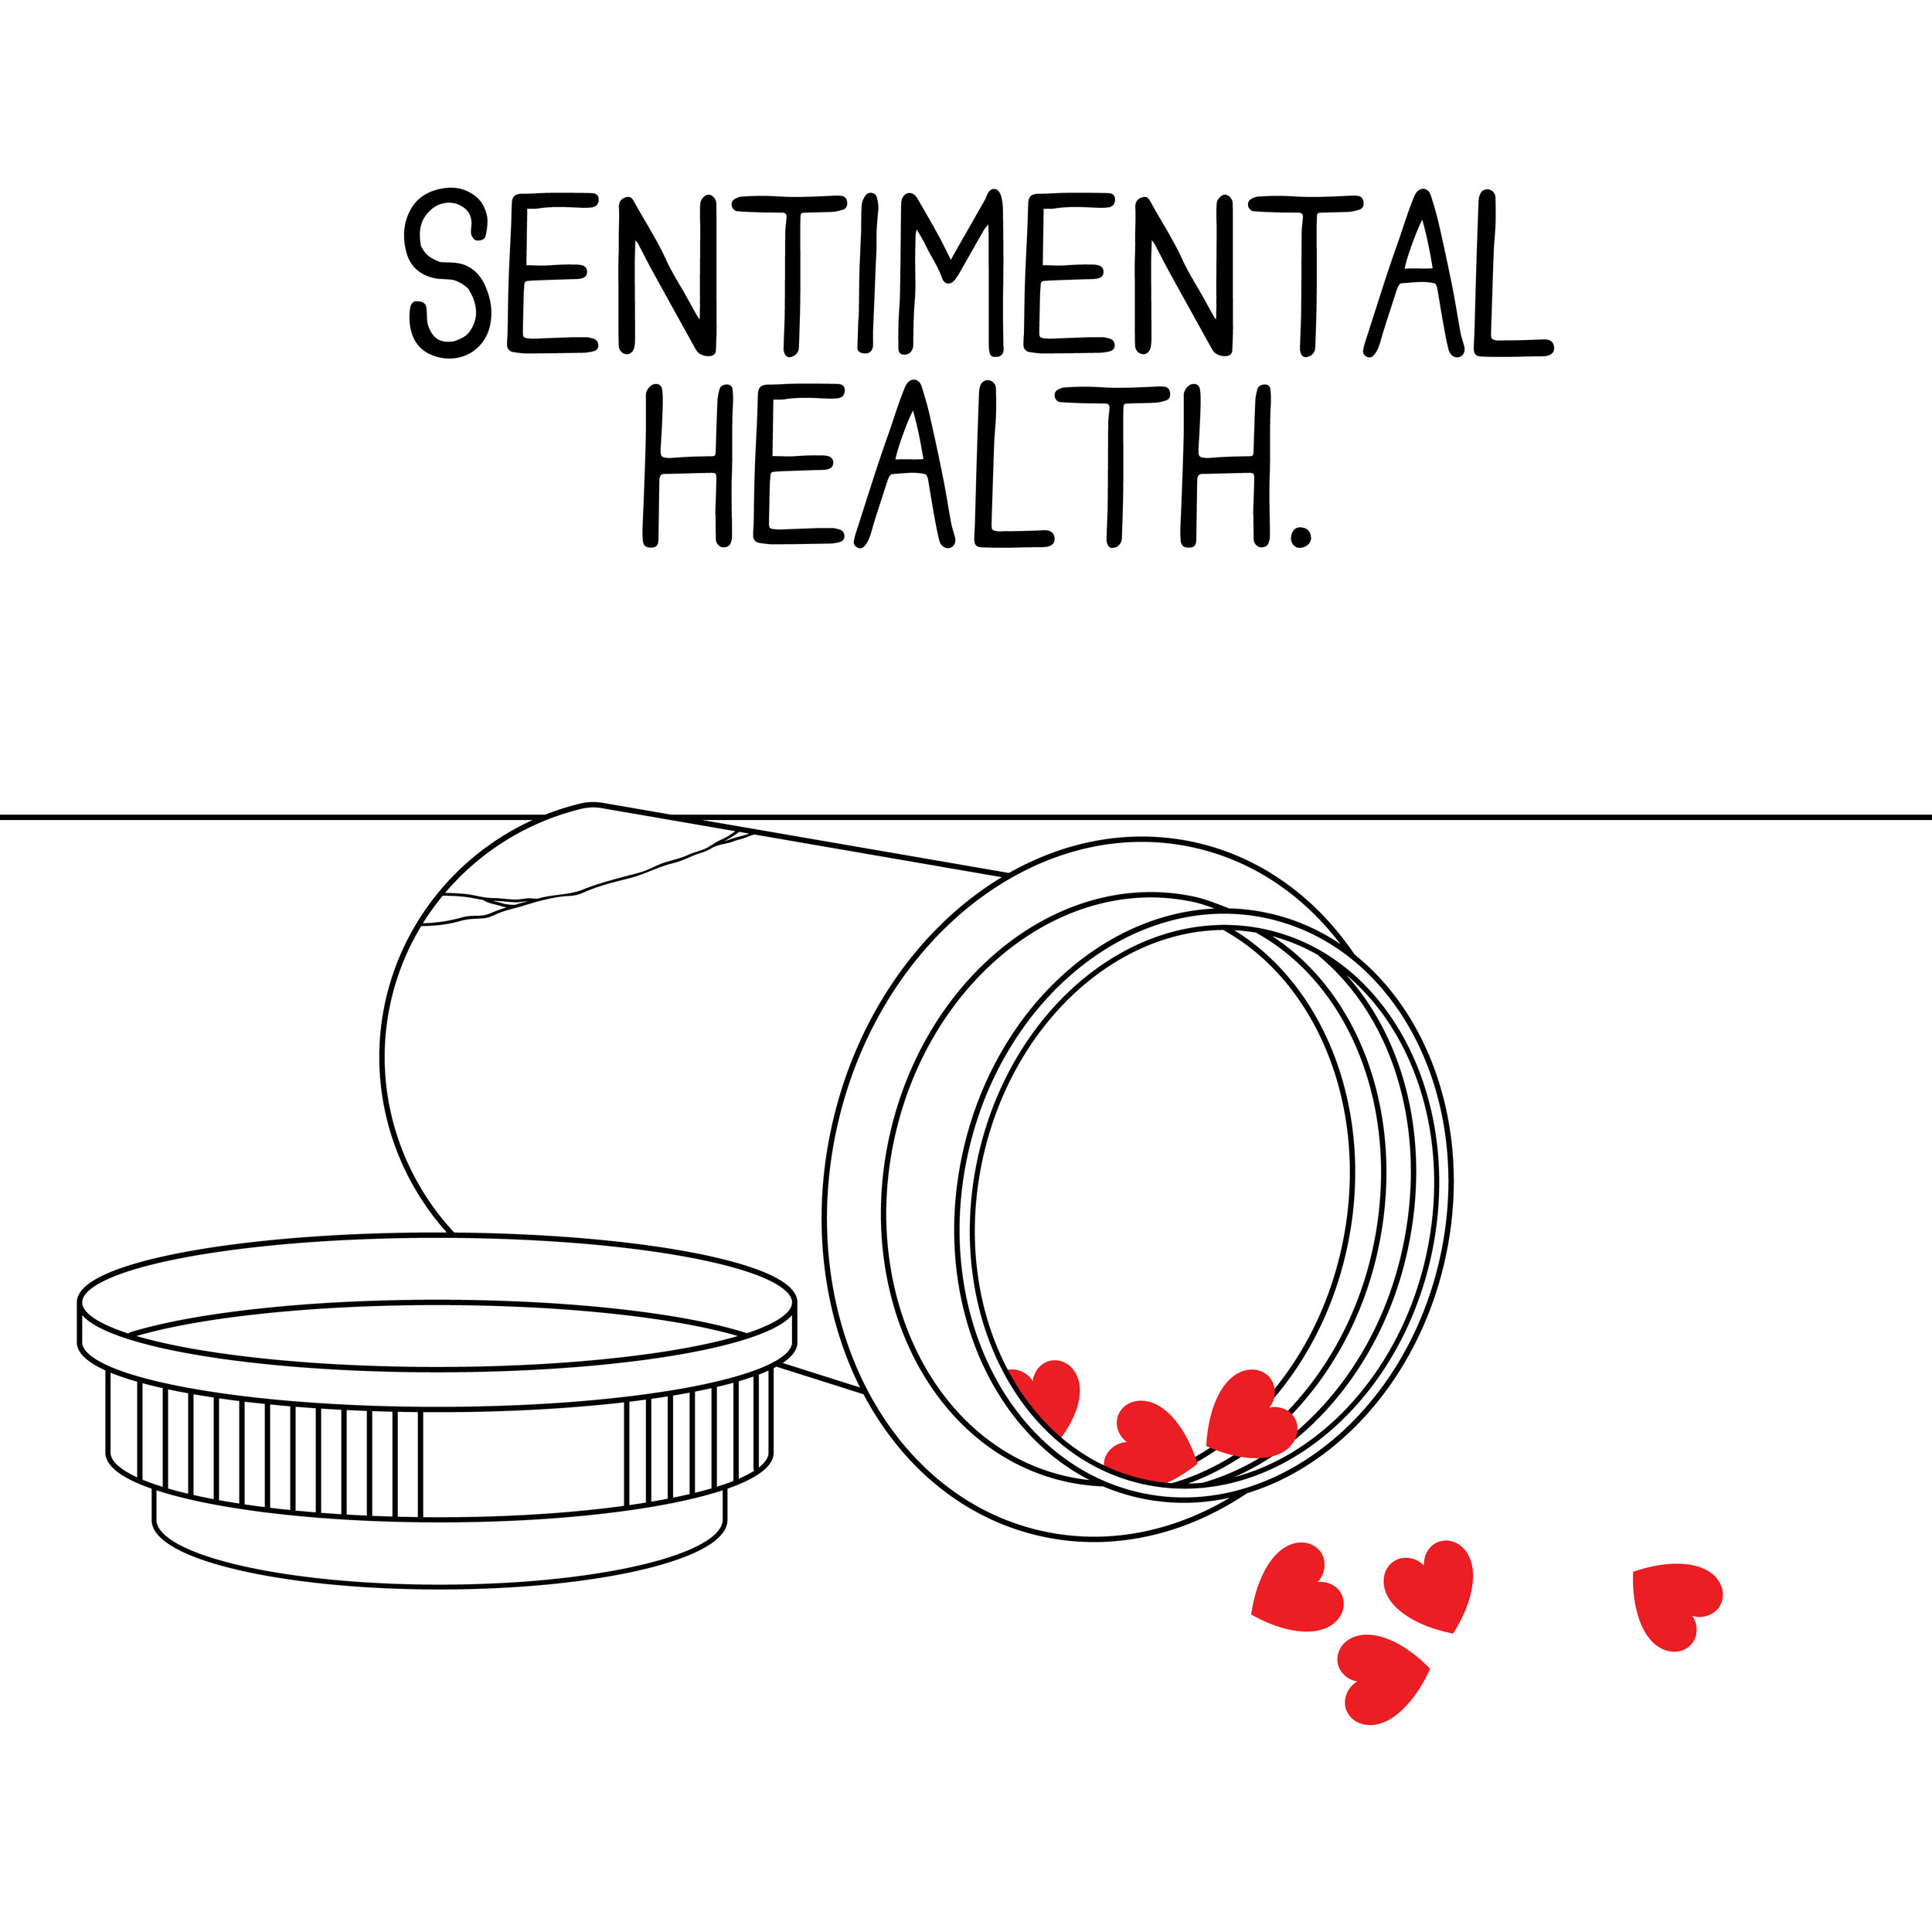 sentimentalhealthother-01.jpg